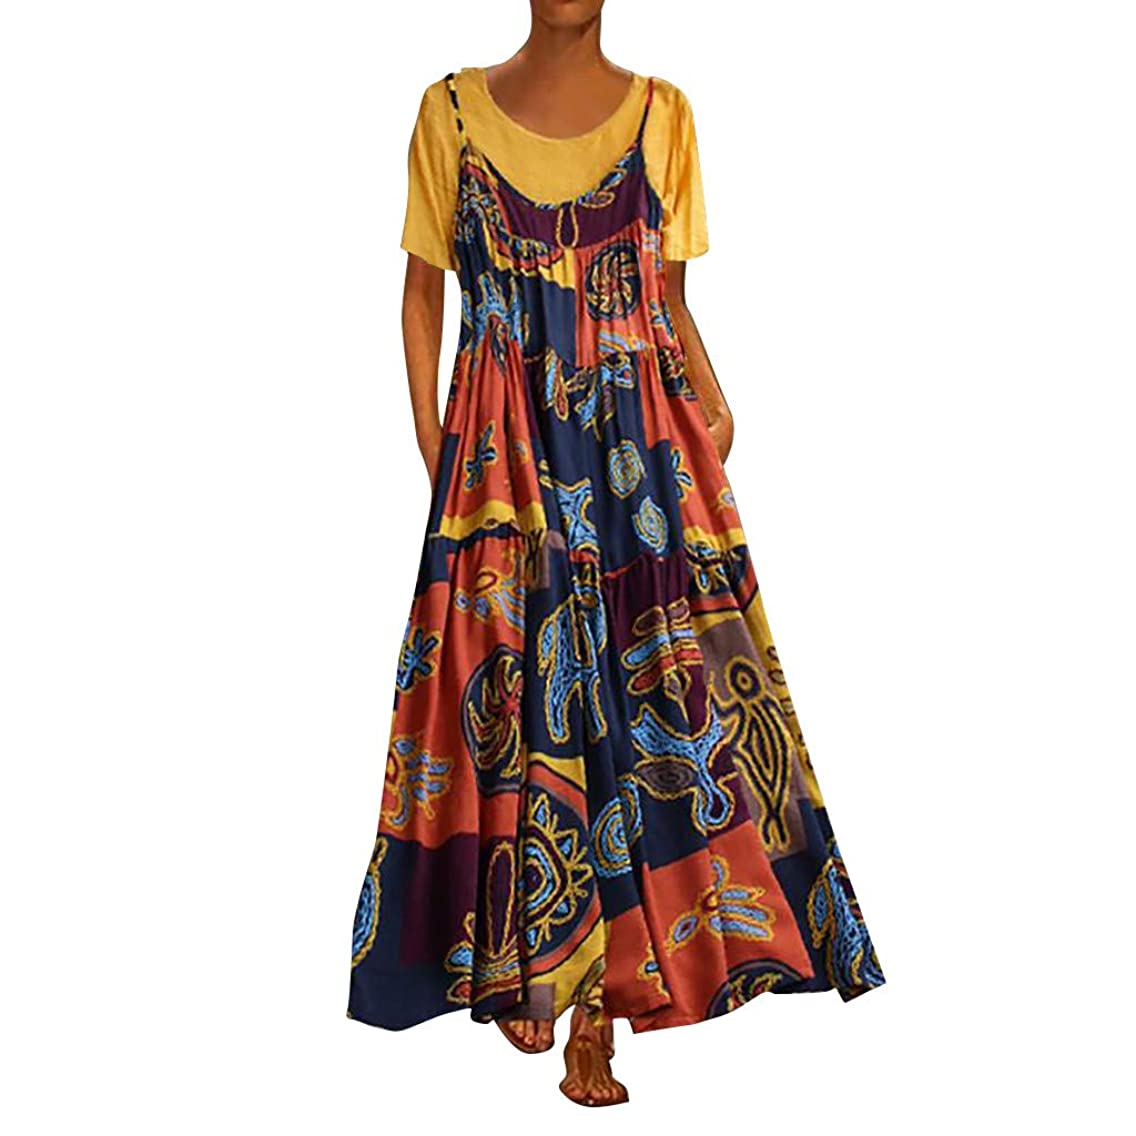 Tomppy Women Plus Size Maxi Dresses Casual Summer Patchwork Two-Piece Short Sleeve Tops + Printed Pocket Sling Long Dress